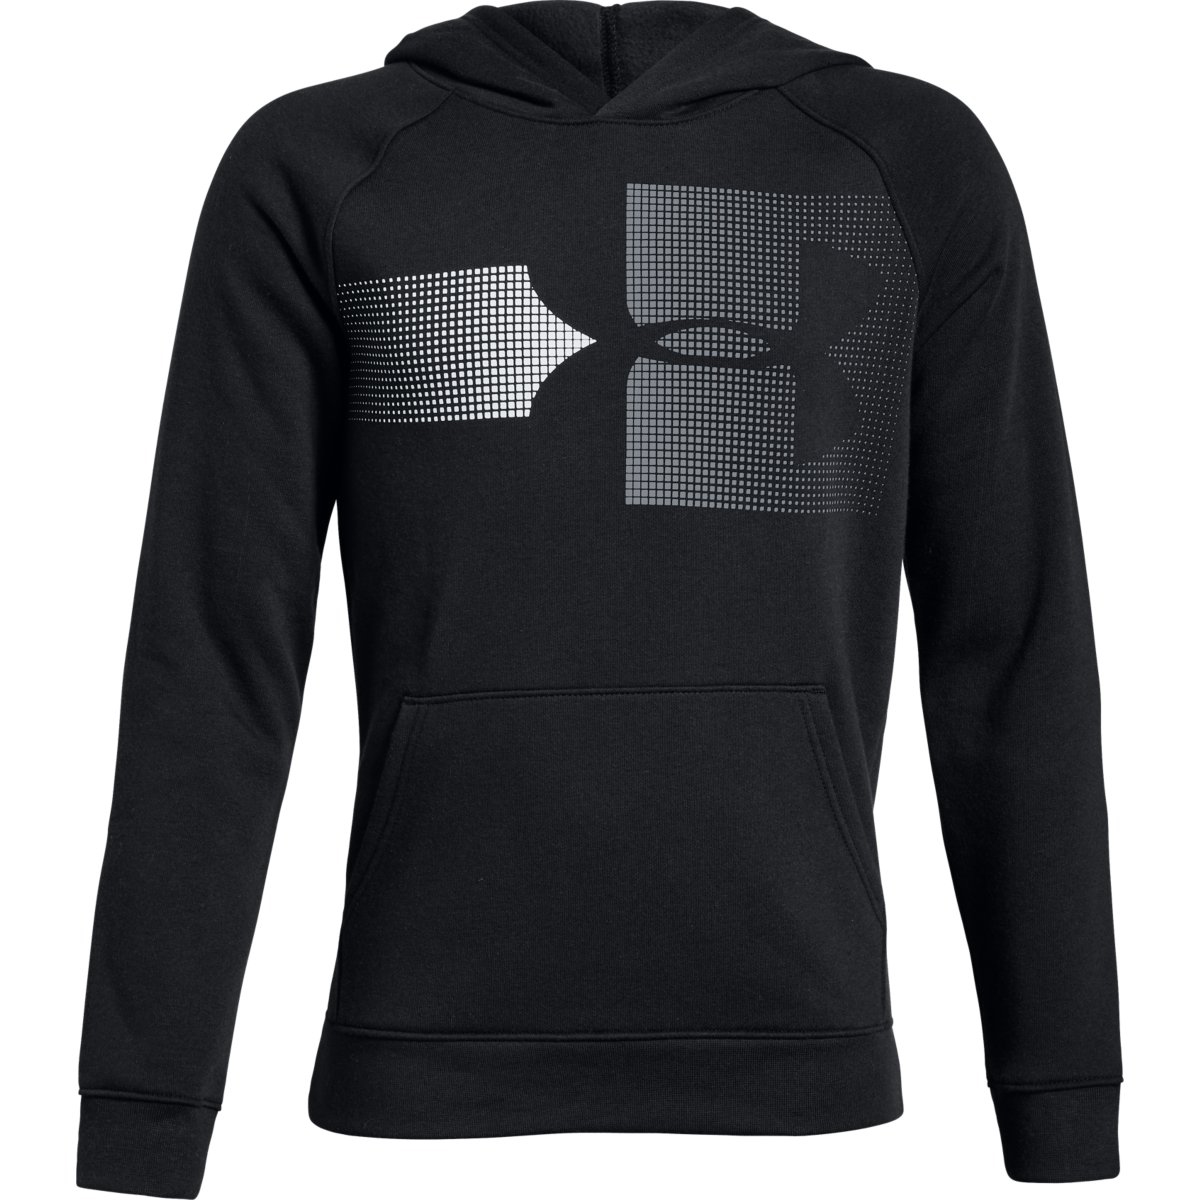 Under Armour Big Boys' Ua Rival Logo Pullover Hoodie - Black, M